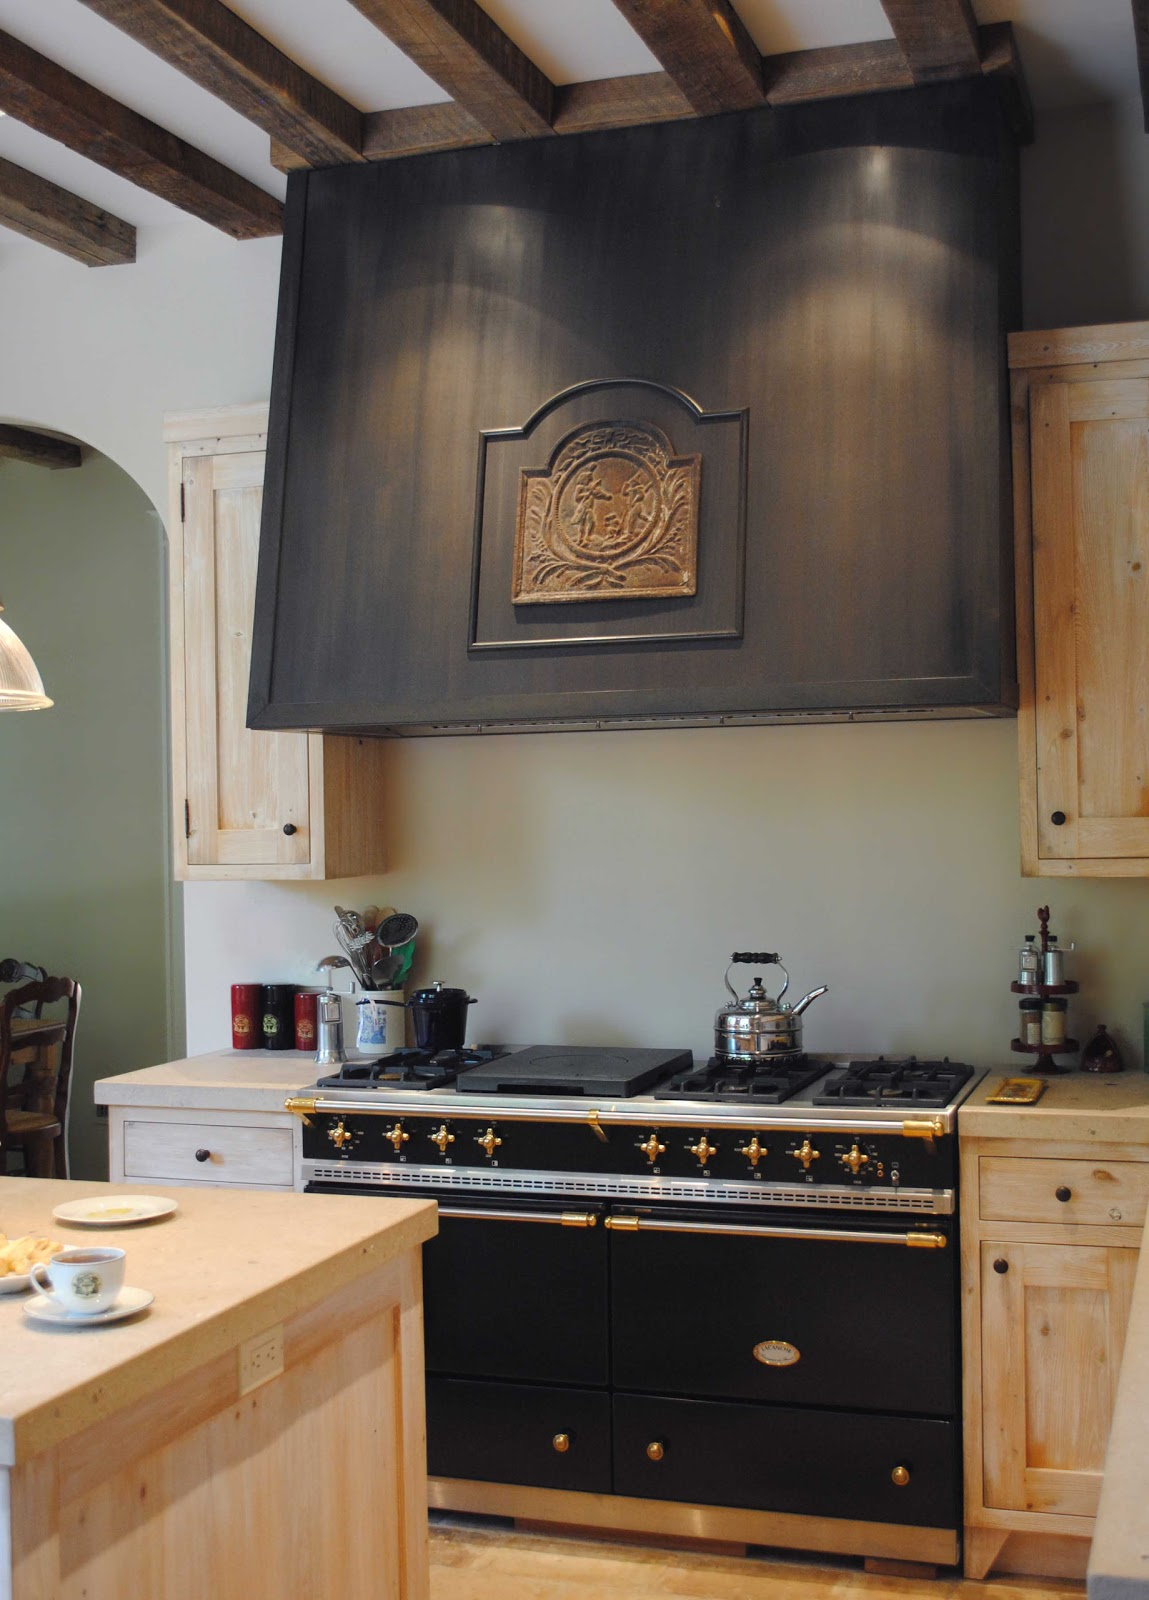 Tone on Tone: Old and New in Kitchen Renovation